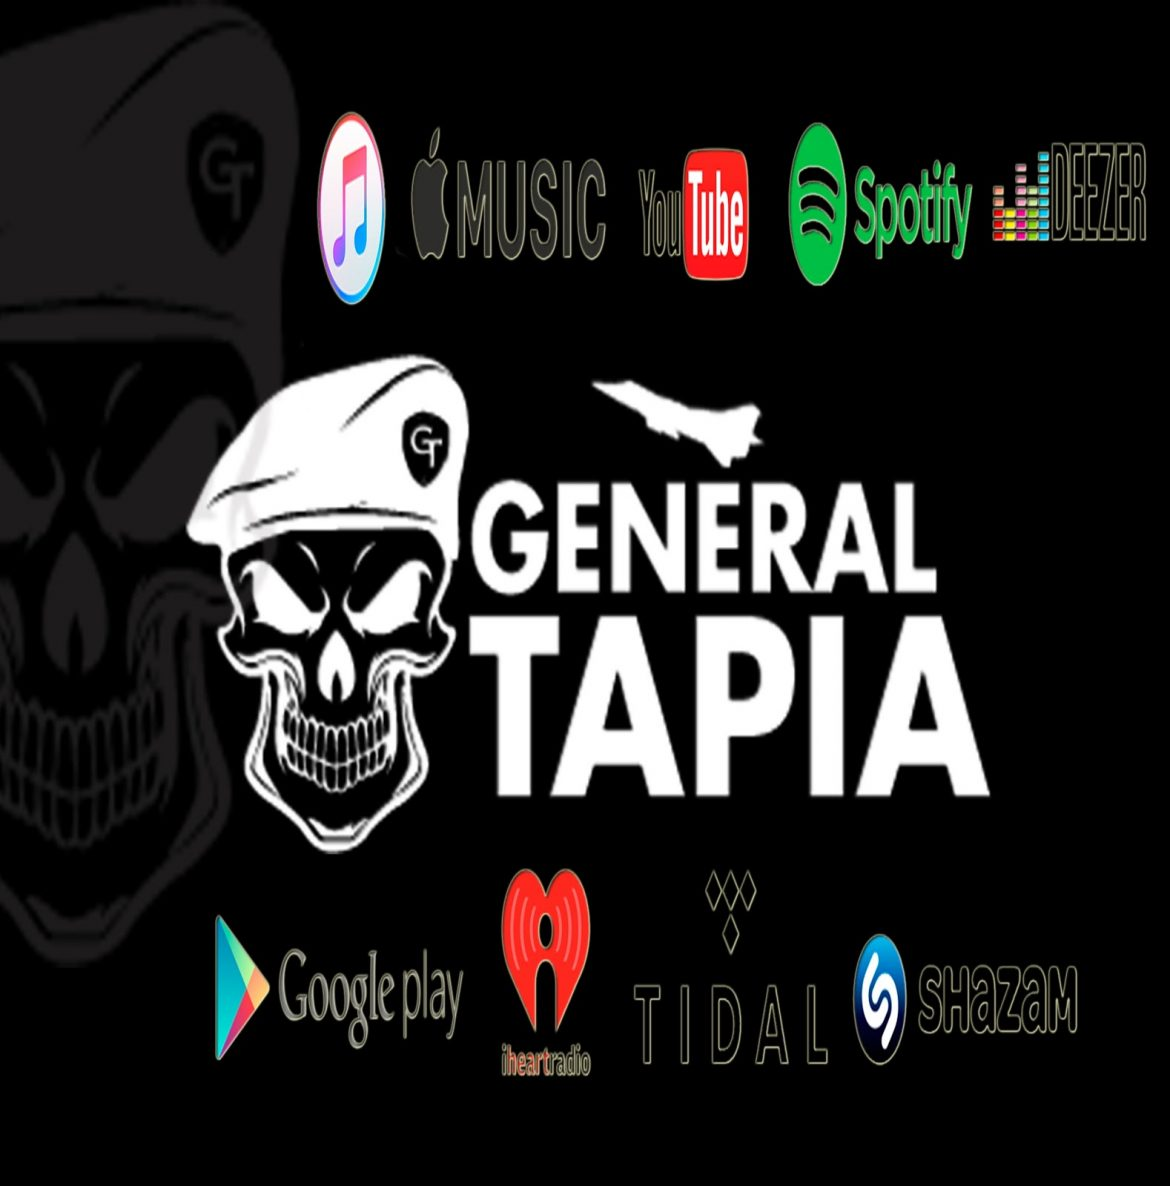 Spanglish Artist, General Tapia Is Making His Mark In The Music Industry With A Unique Blend of Rap, Hip Hop & Latin Fusion